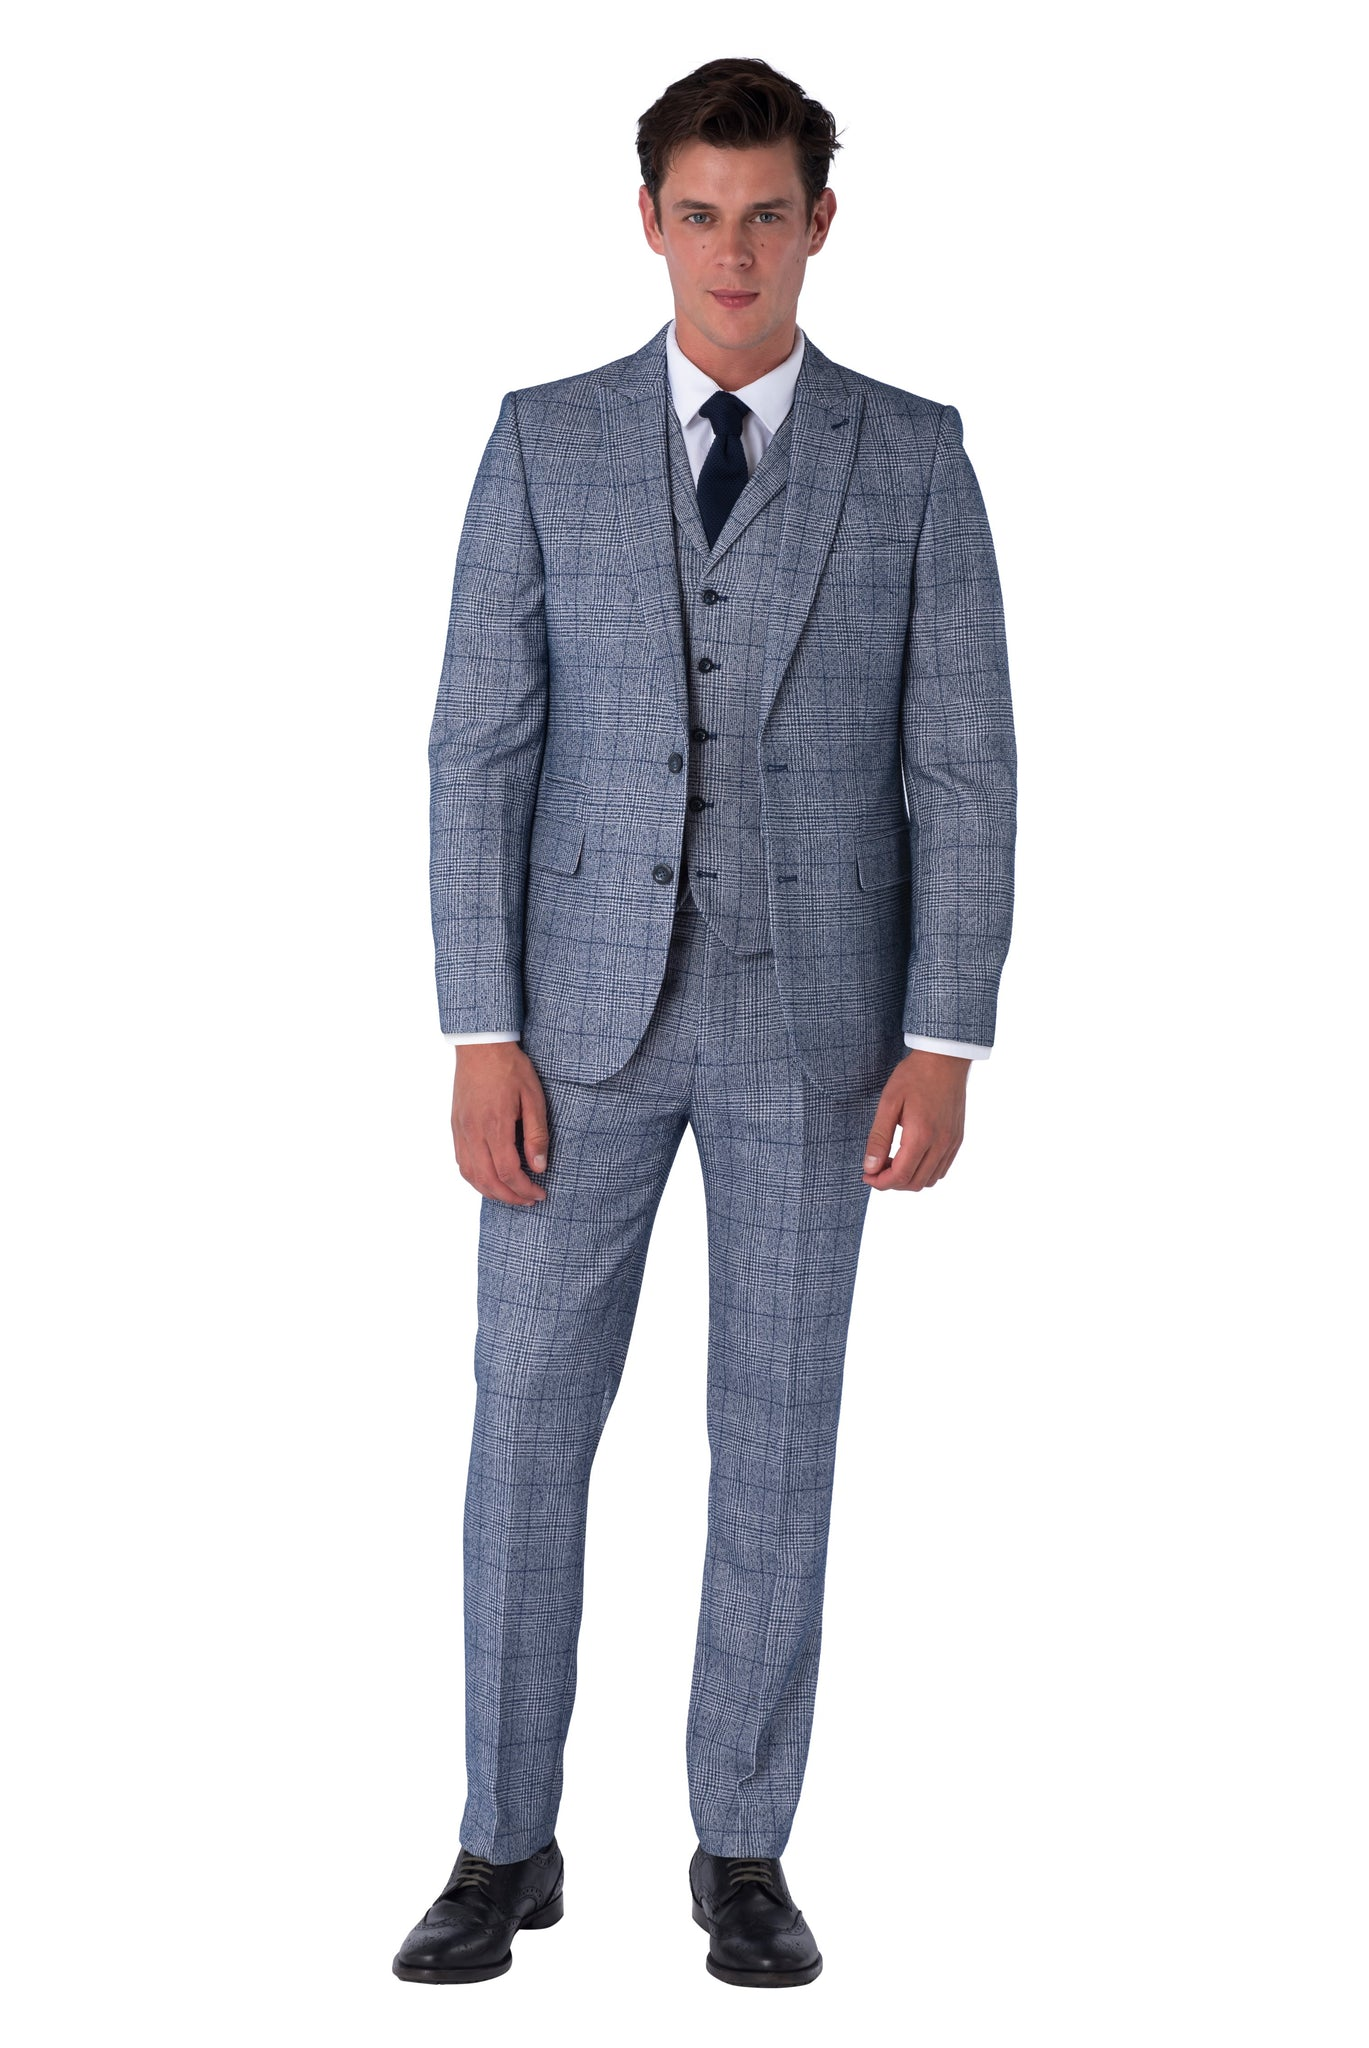 Front of Daniel Blue & Navy Suit